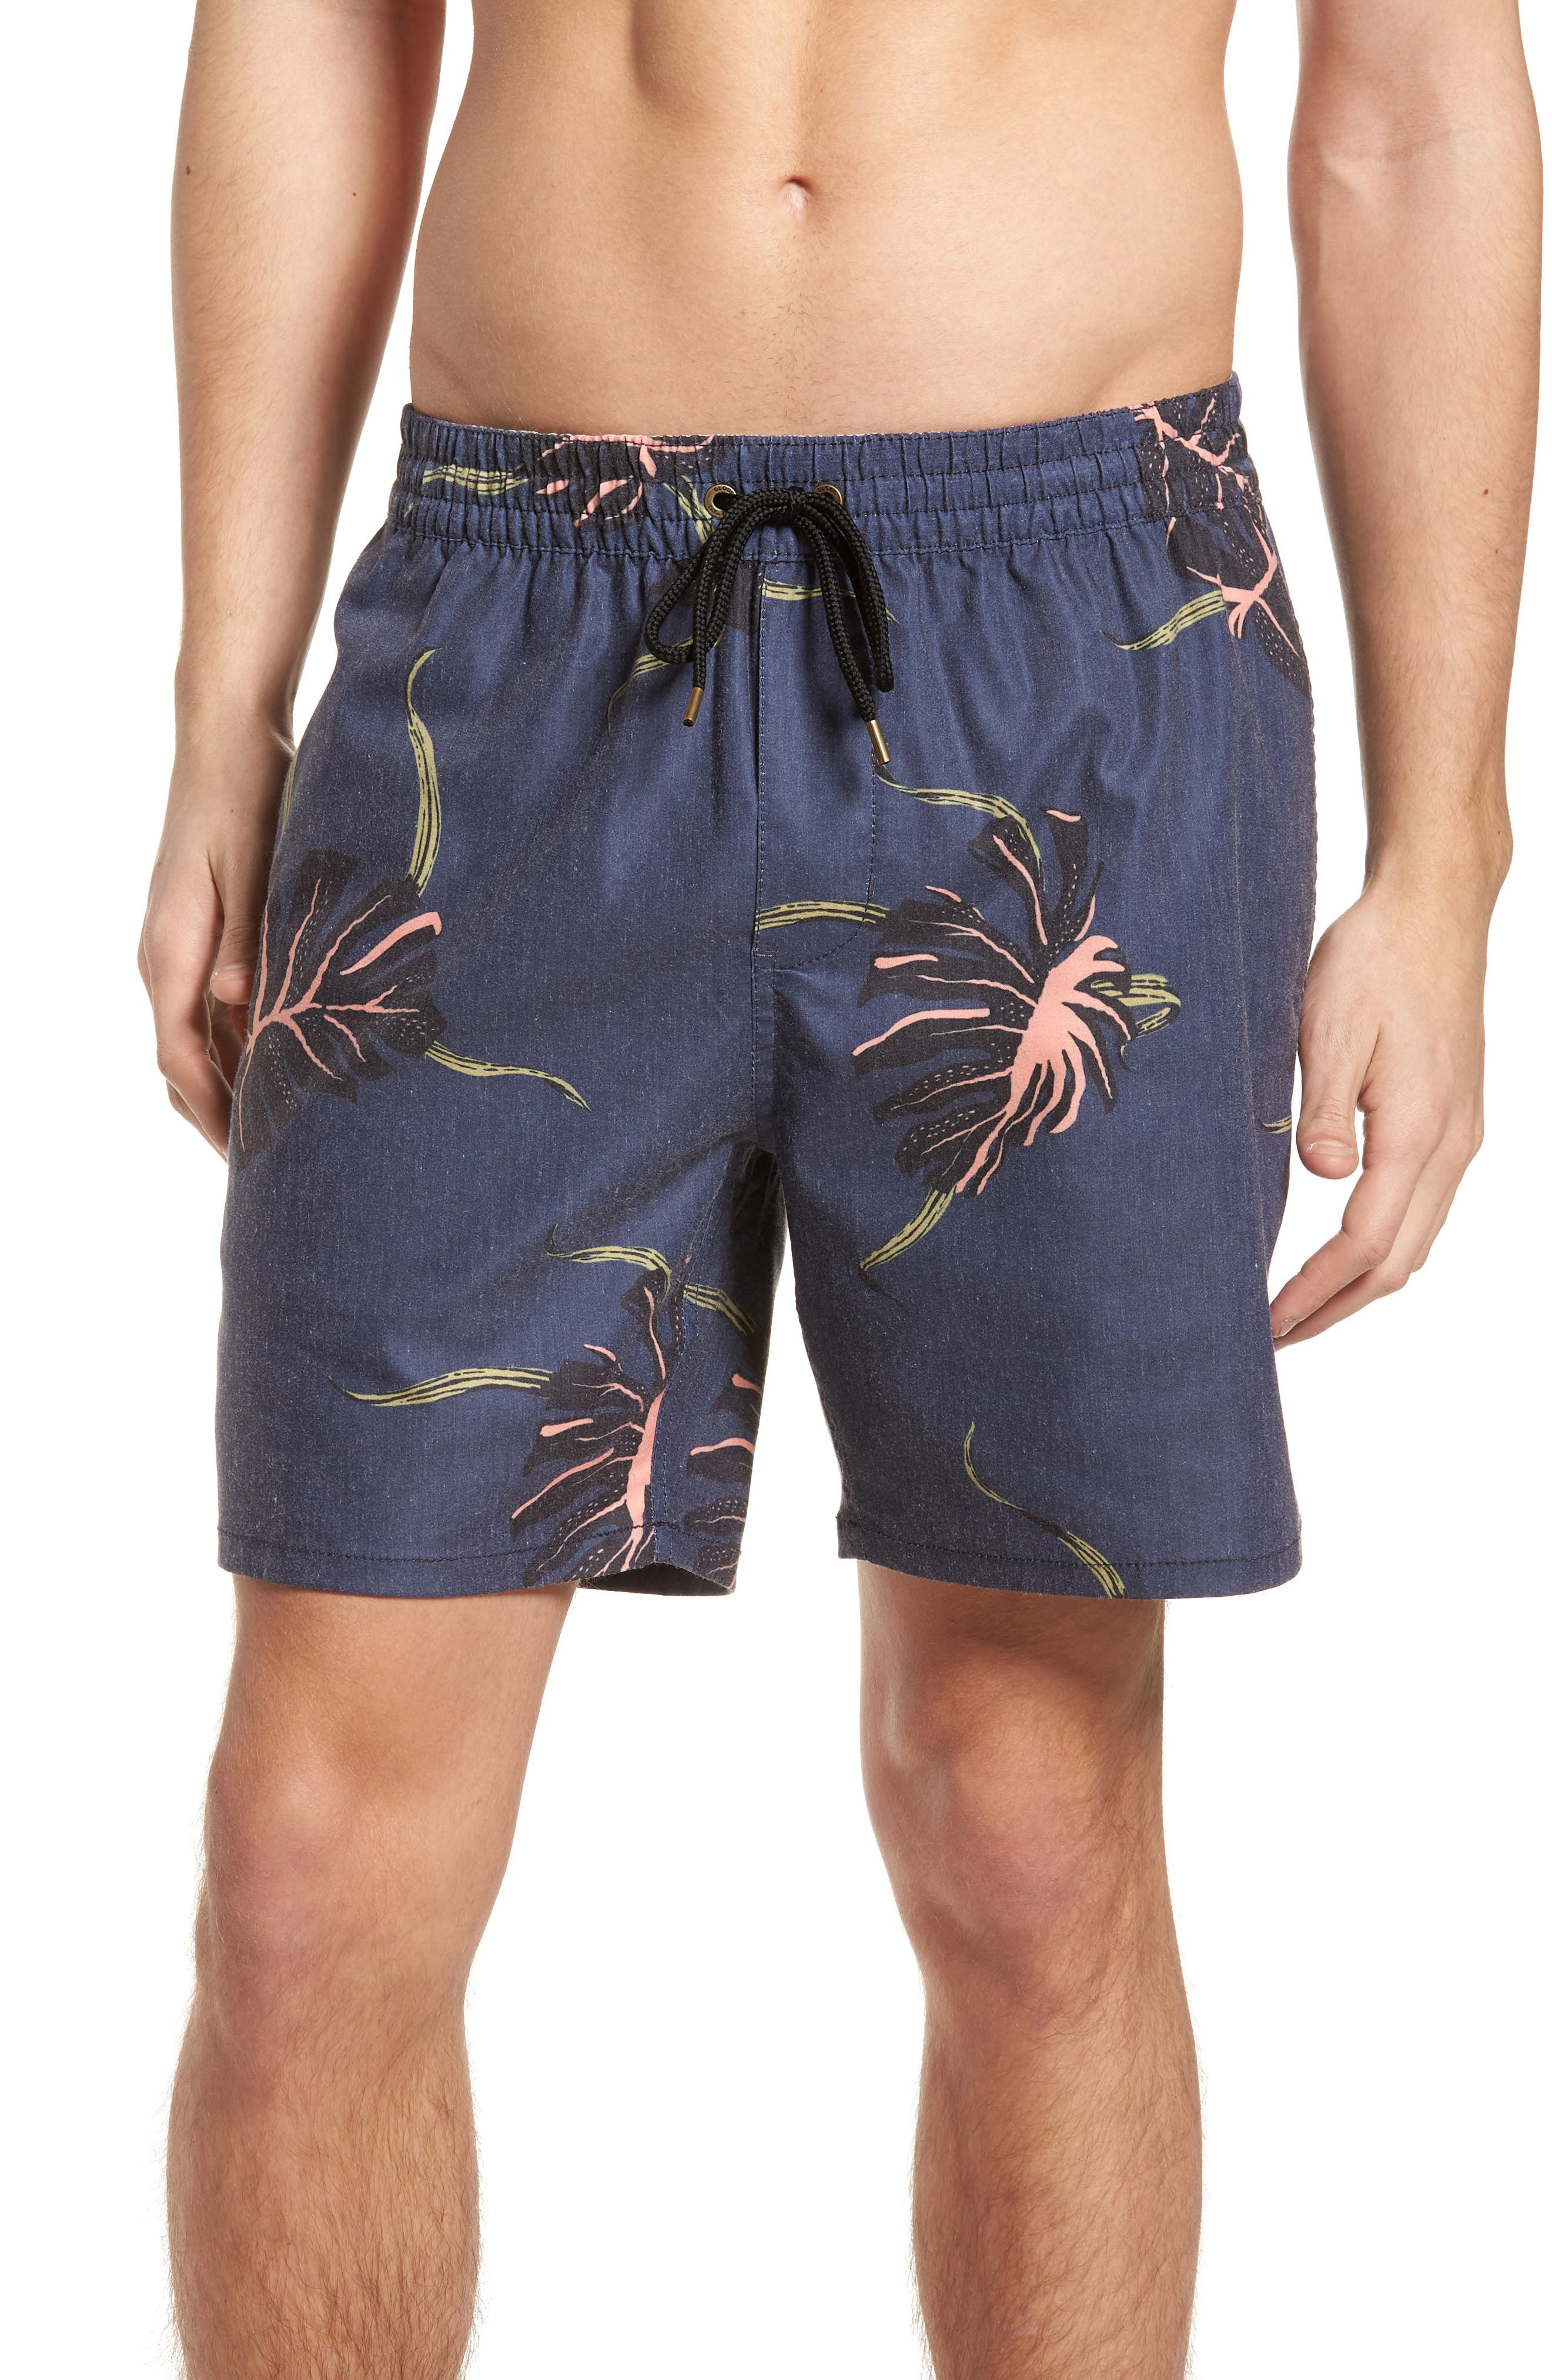 Pointer Pool Shorts,                         Main,                         color, Moonlight Blue